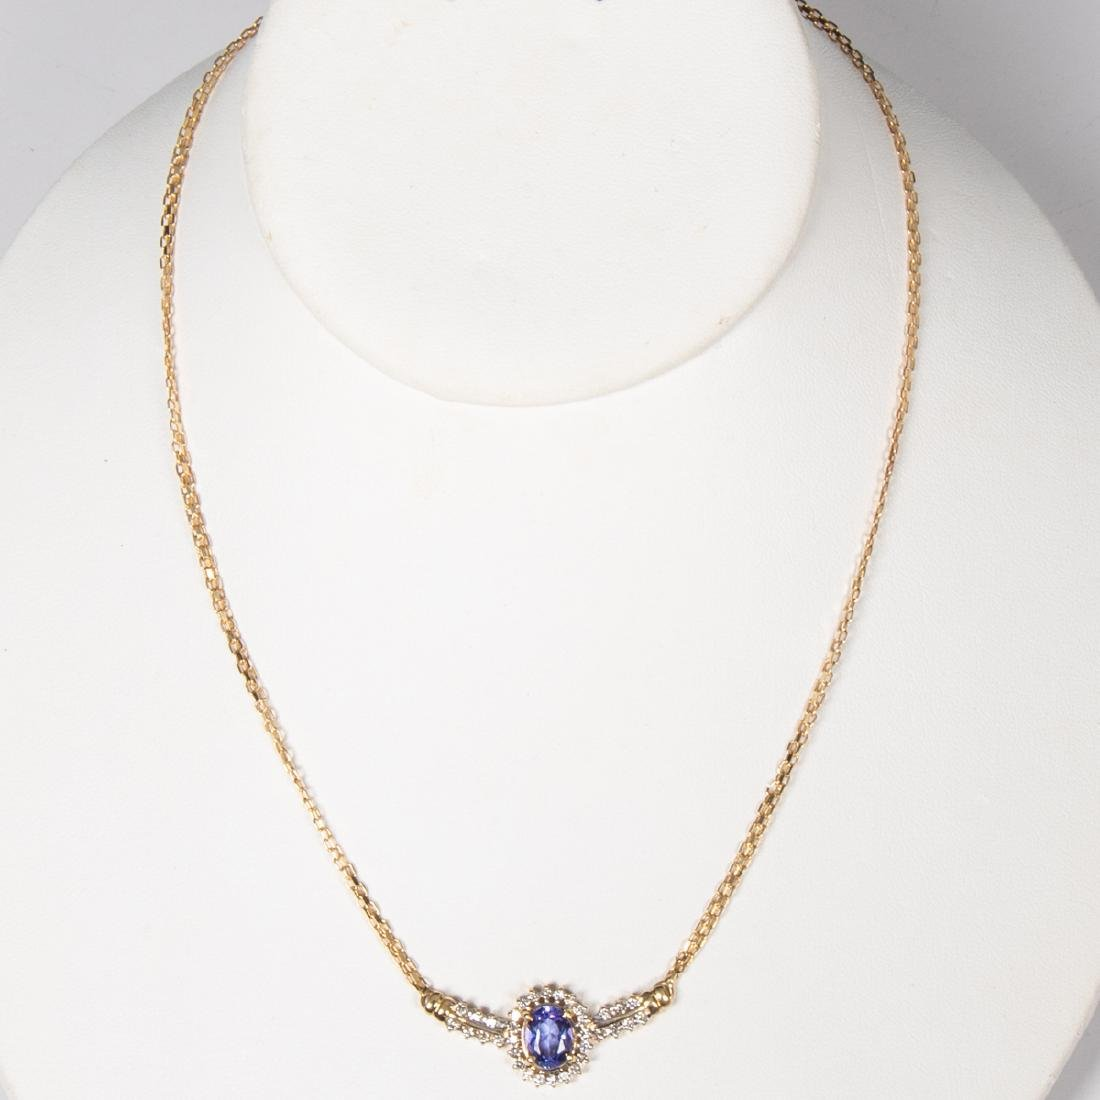 A 14kt Yellow Gold, Tanzanite and Diamond Necklace, - 2